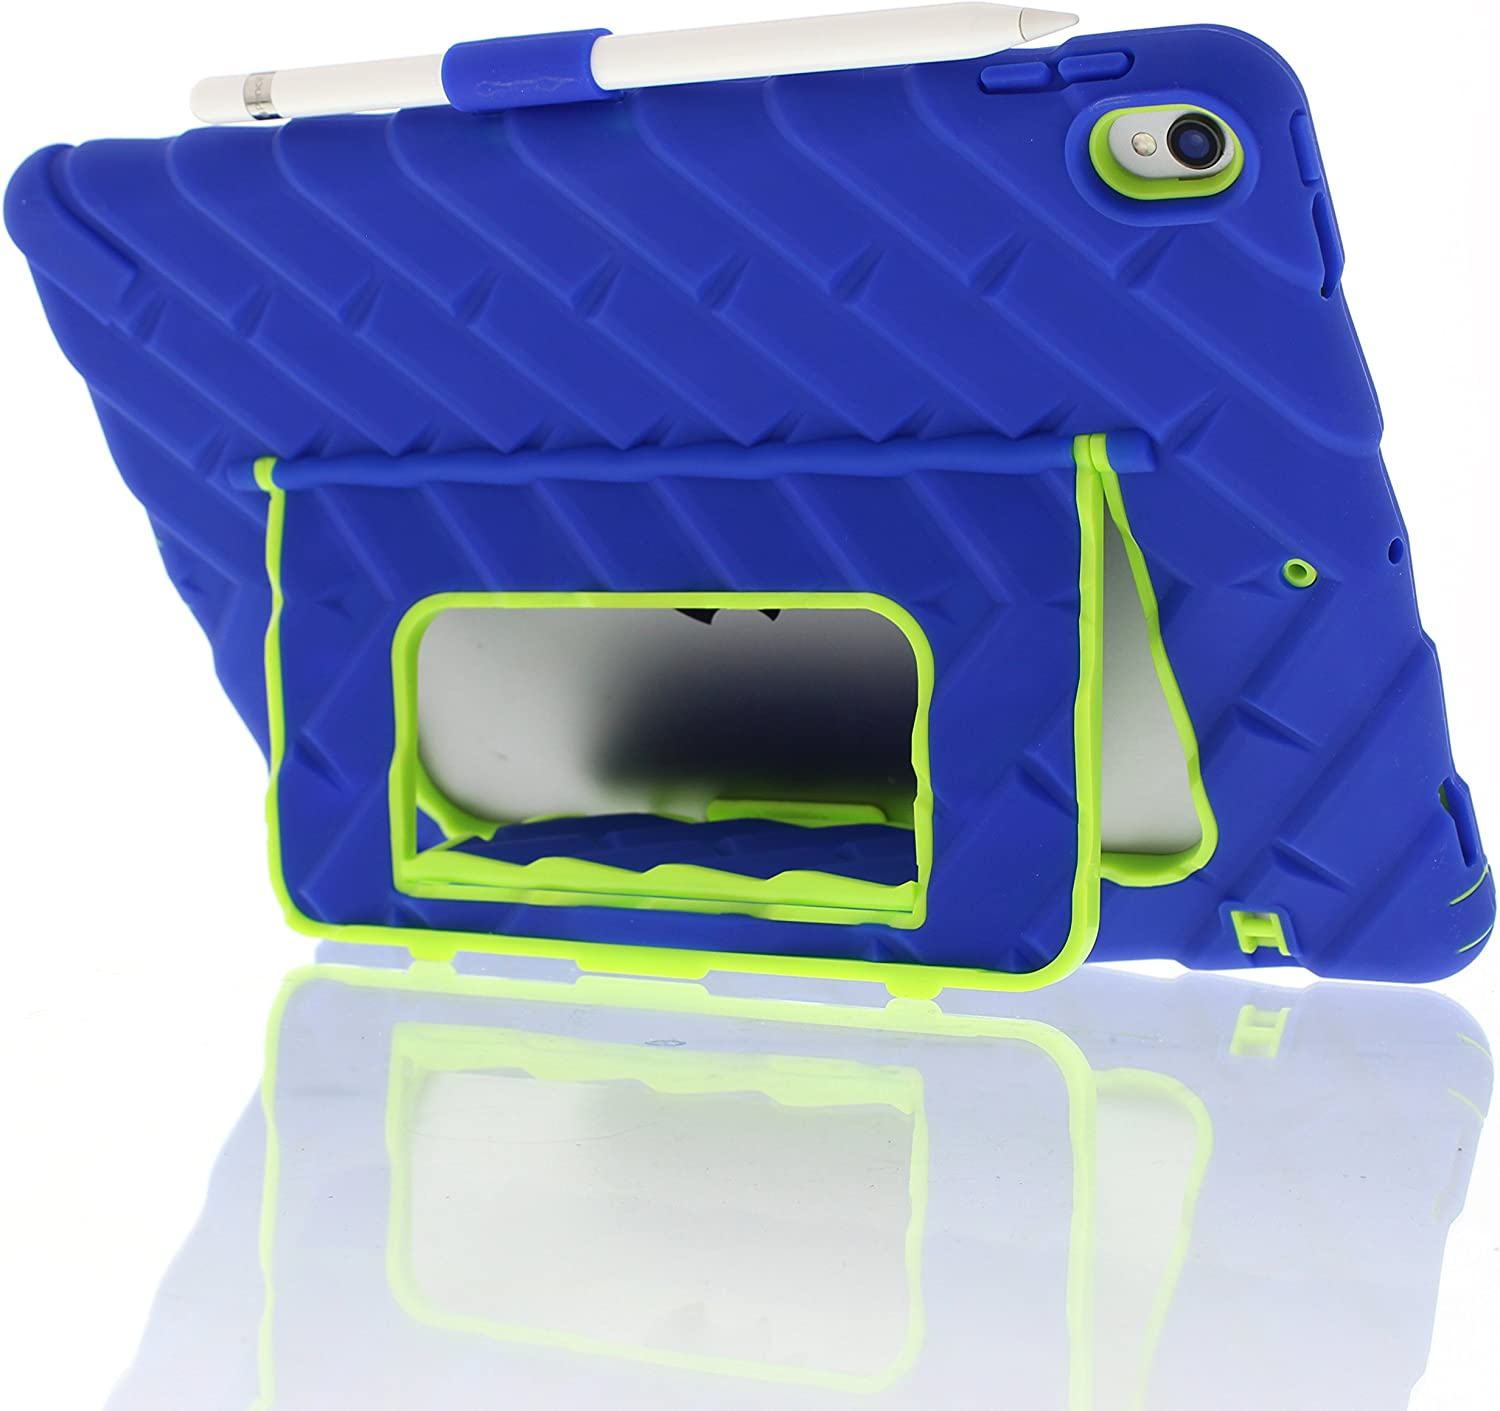 Gumdrop Hideaway Case for The iPad Pro 10.5 Tablet for Kids - Blue/Lime, Shock Absorbing, Extreme Drop Protection